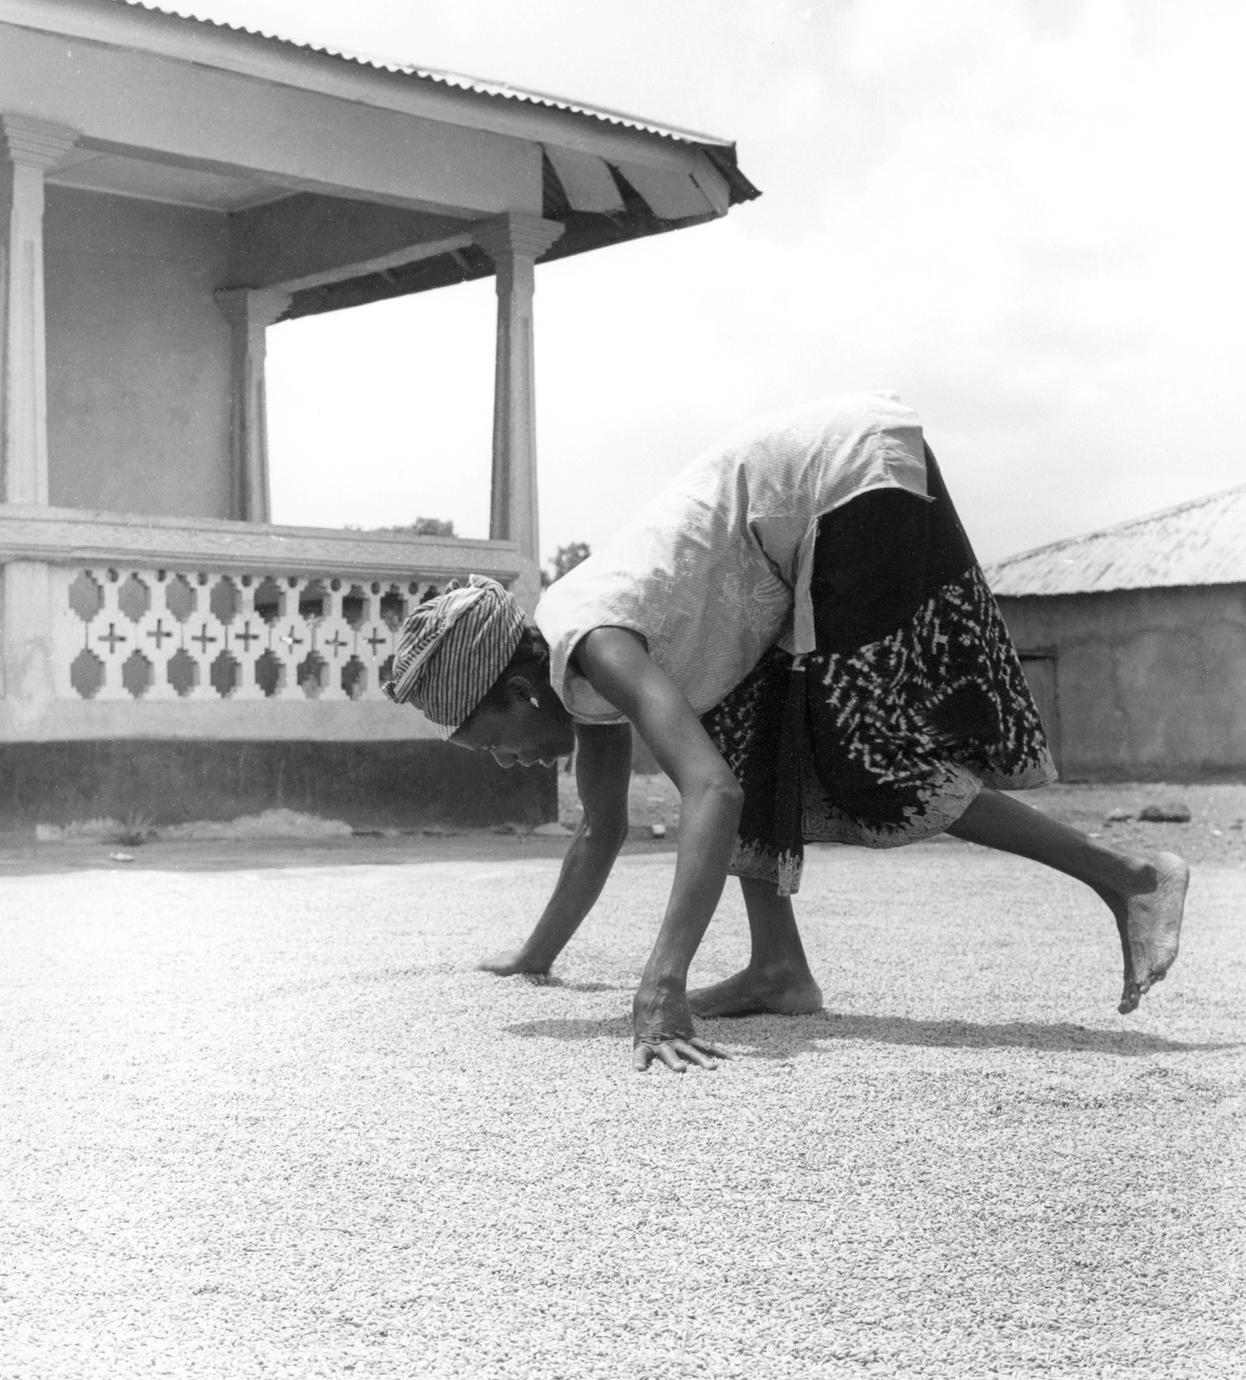 Woman Spreading Out Rice on the Ground